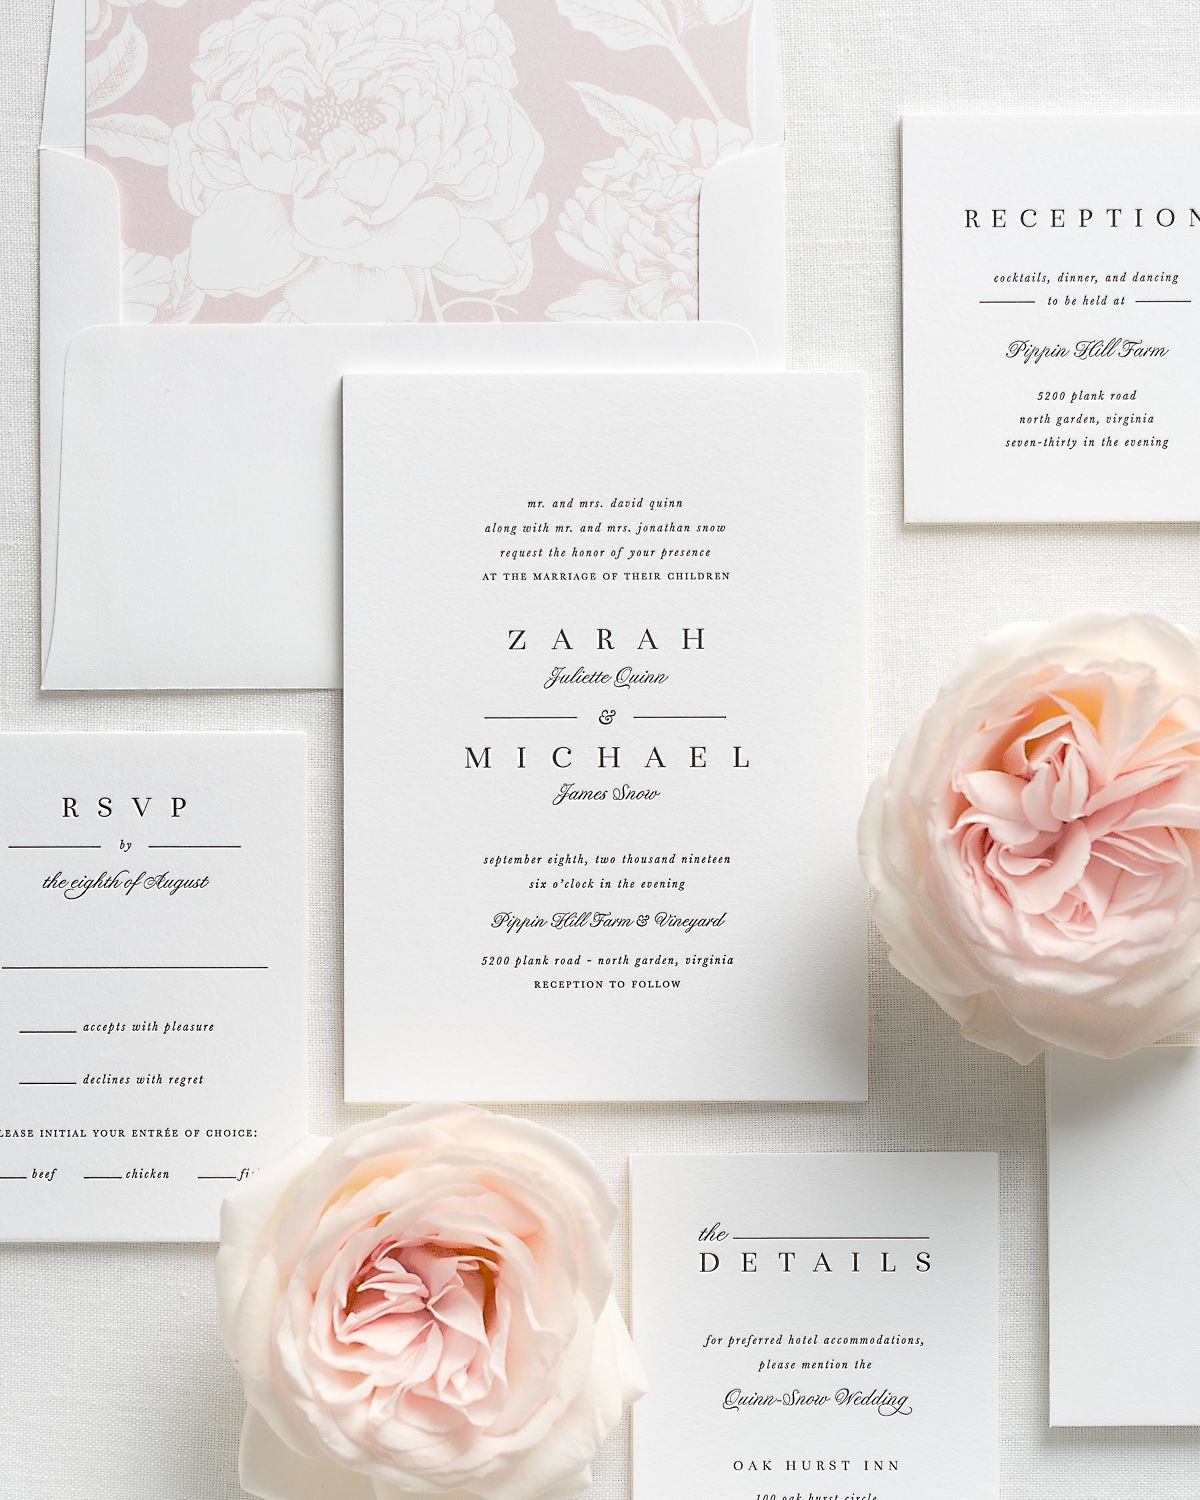 classic and traditional letterpress wedding invitations with a vintage blush envelope liner